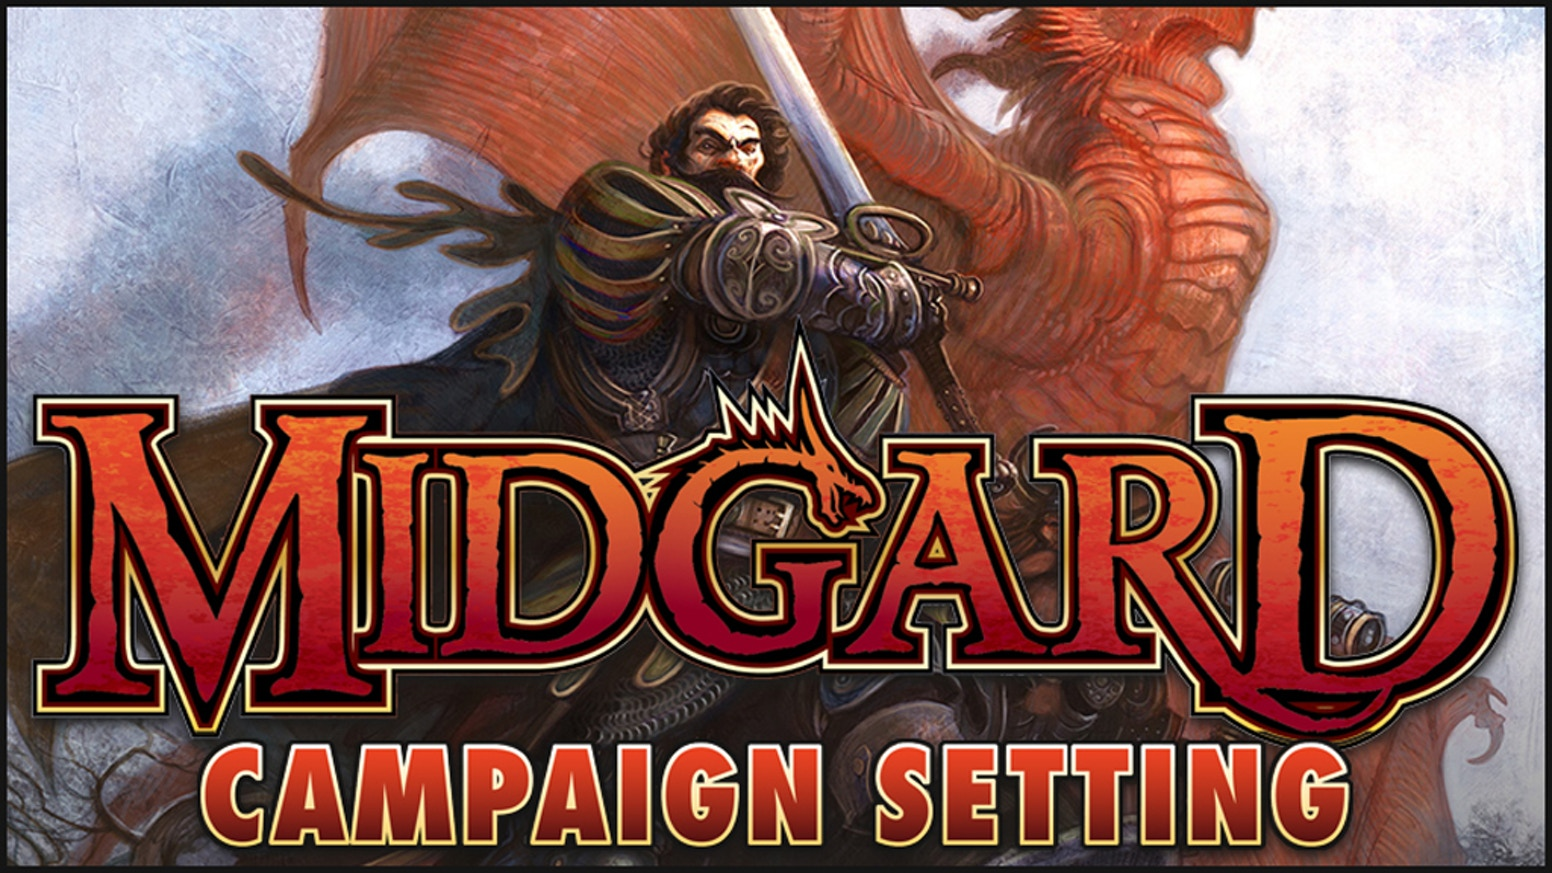 Six years have passed; high time to update the Midgard Campaign Setting, and add Deep Magic, adventures, and player options galore!